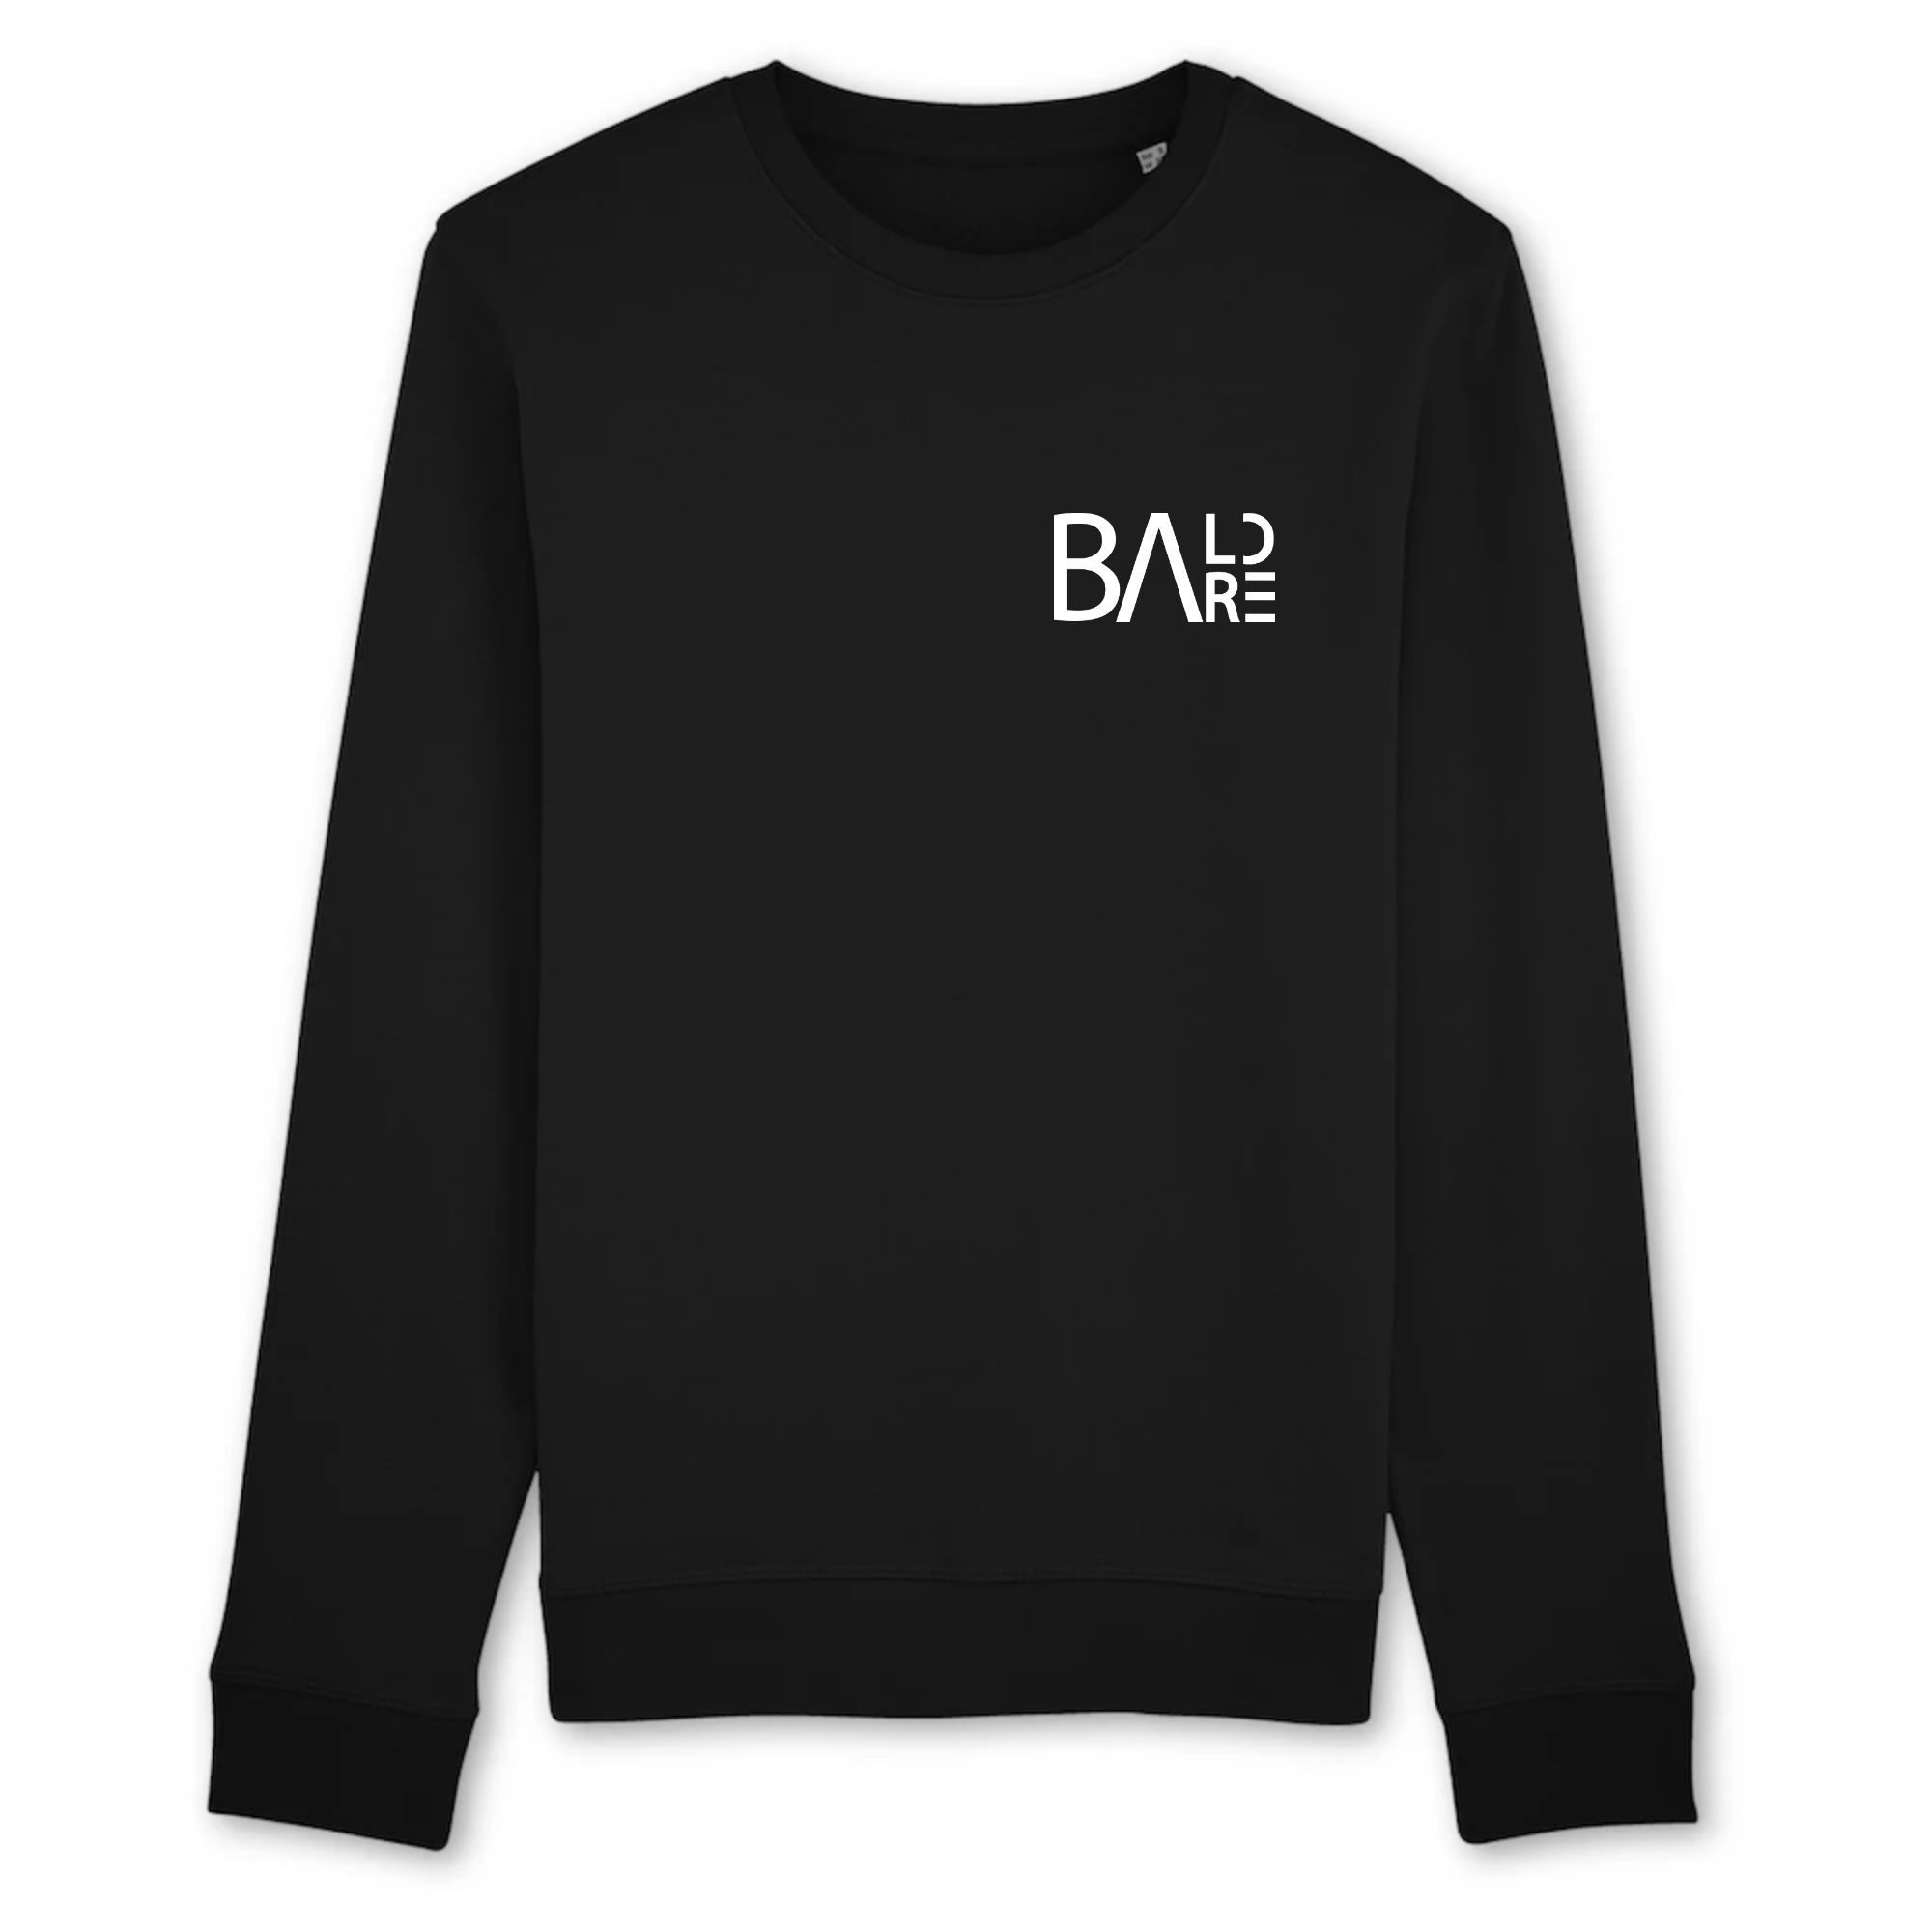 Bald & Bare Unisex sweater